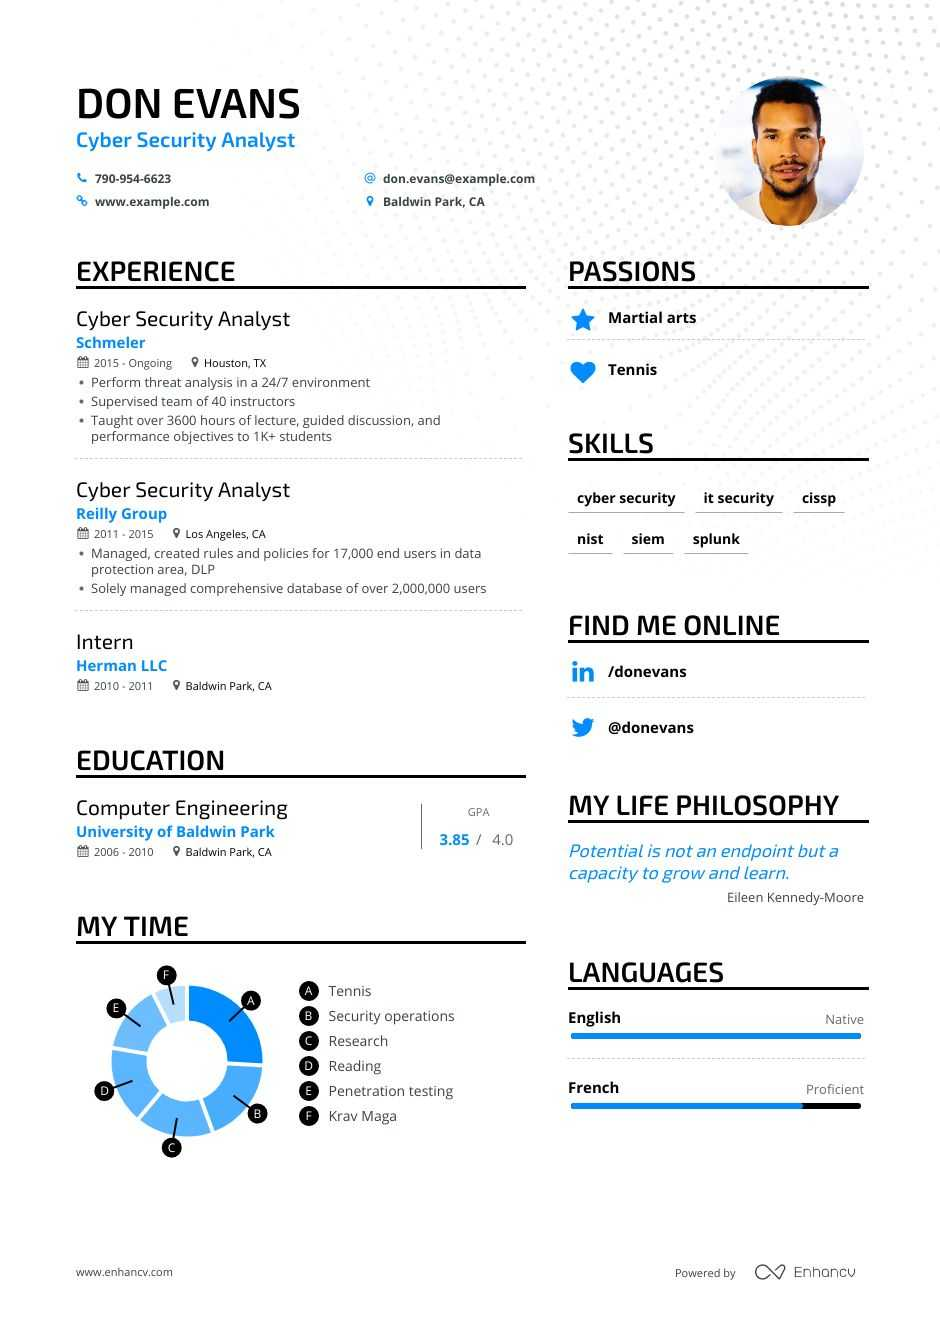 cyber security analyst resume examples guide pro tips enhancv entry level technical Resume Entry Level Cyber Security Resume